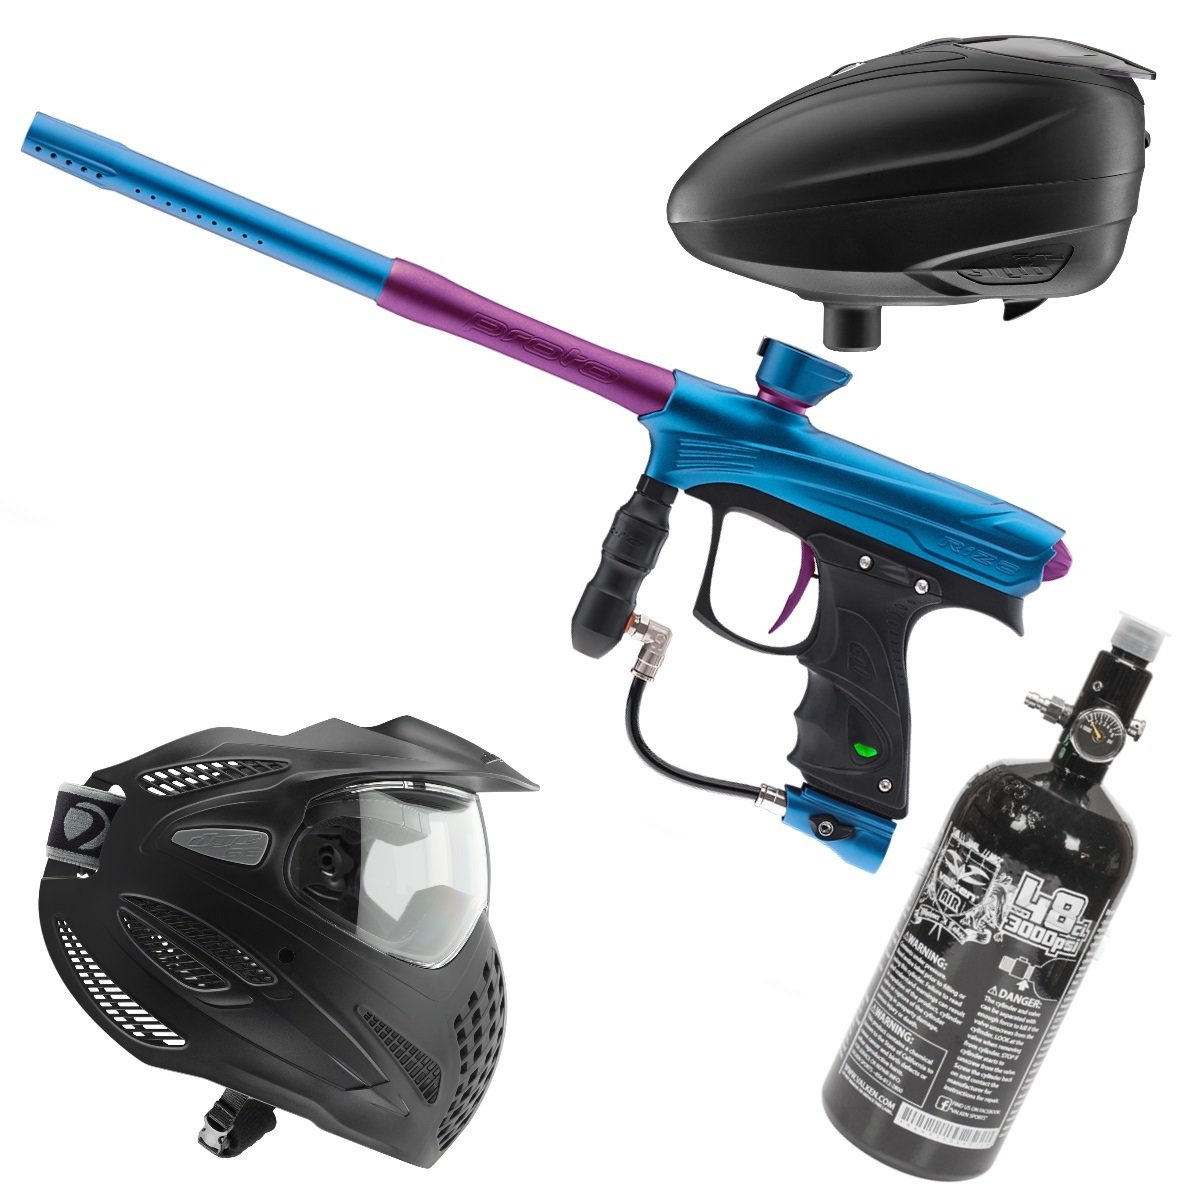 Marker Package - Dye Rize Maxxed Marker - Cyan/Purple / Dye LT-R Black / Dye Se Goggle Single / Valken 48cu 3000 psi Air Tank